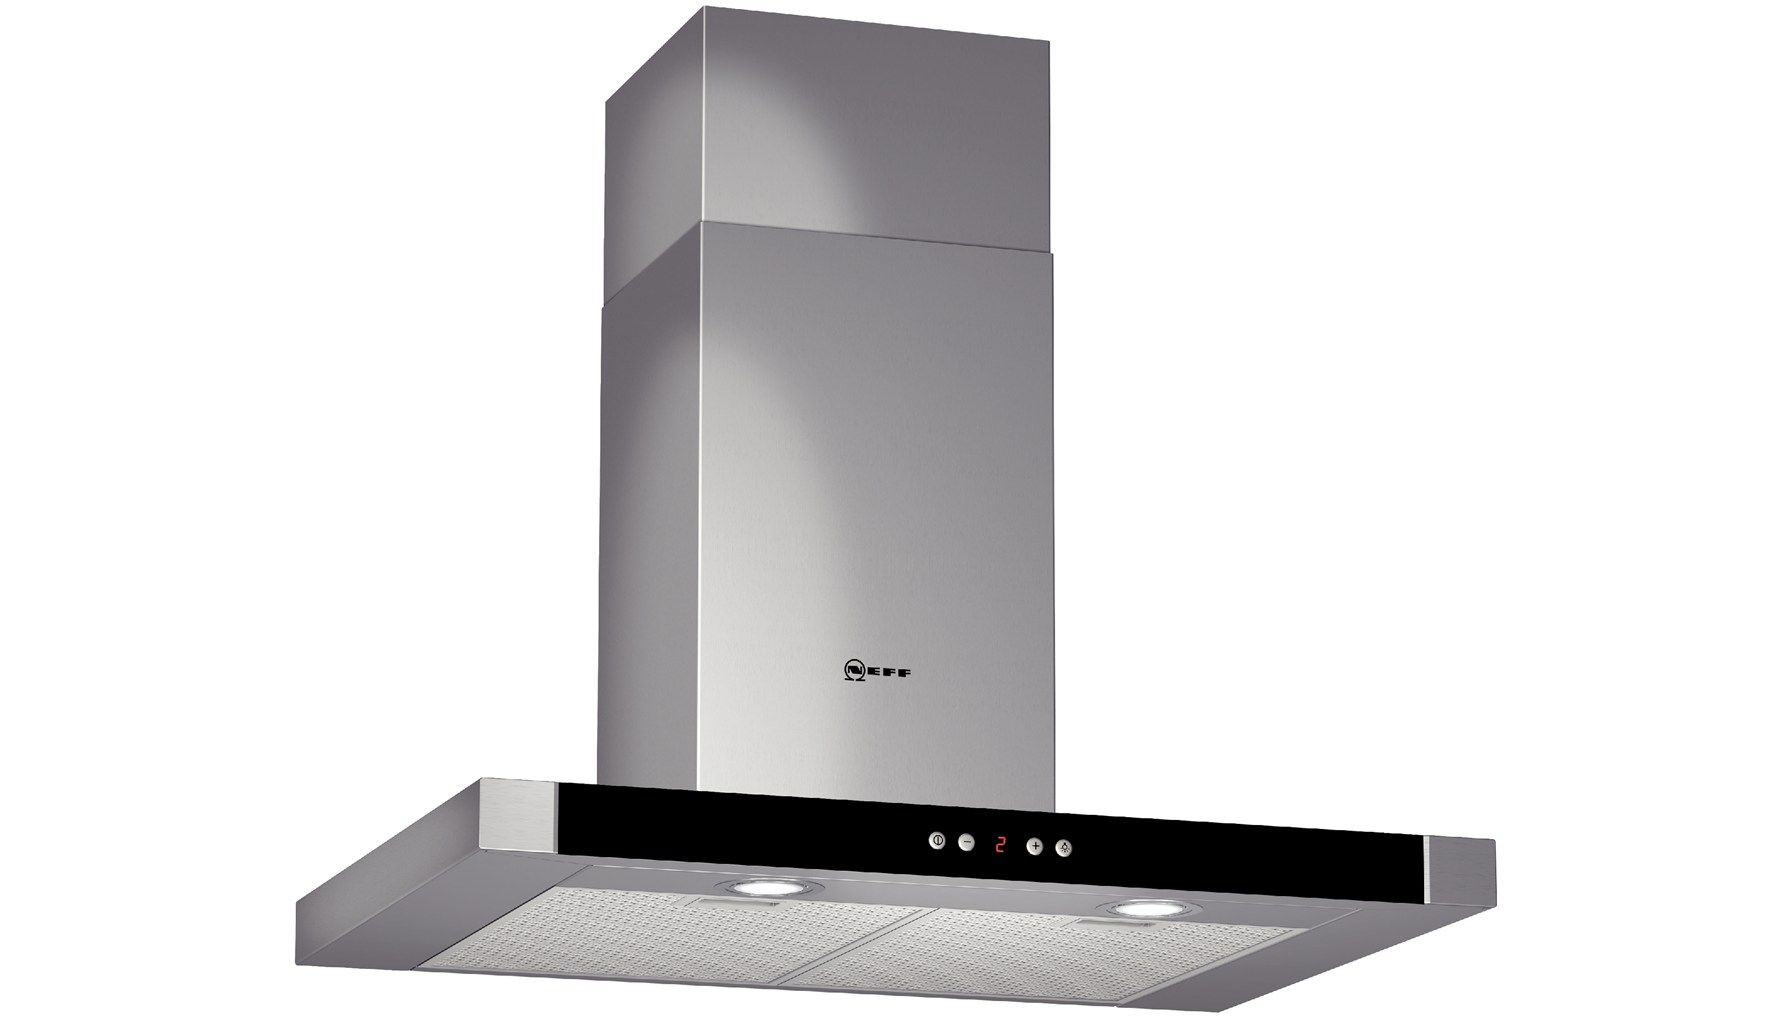 Cda cooker hood 90cm are large bathroom mirrors out of style